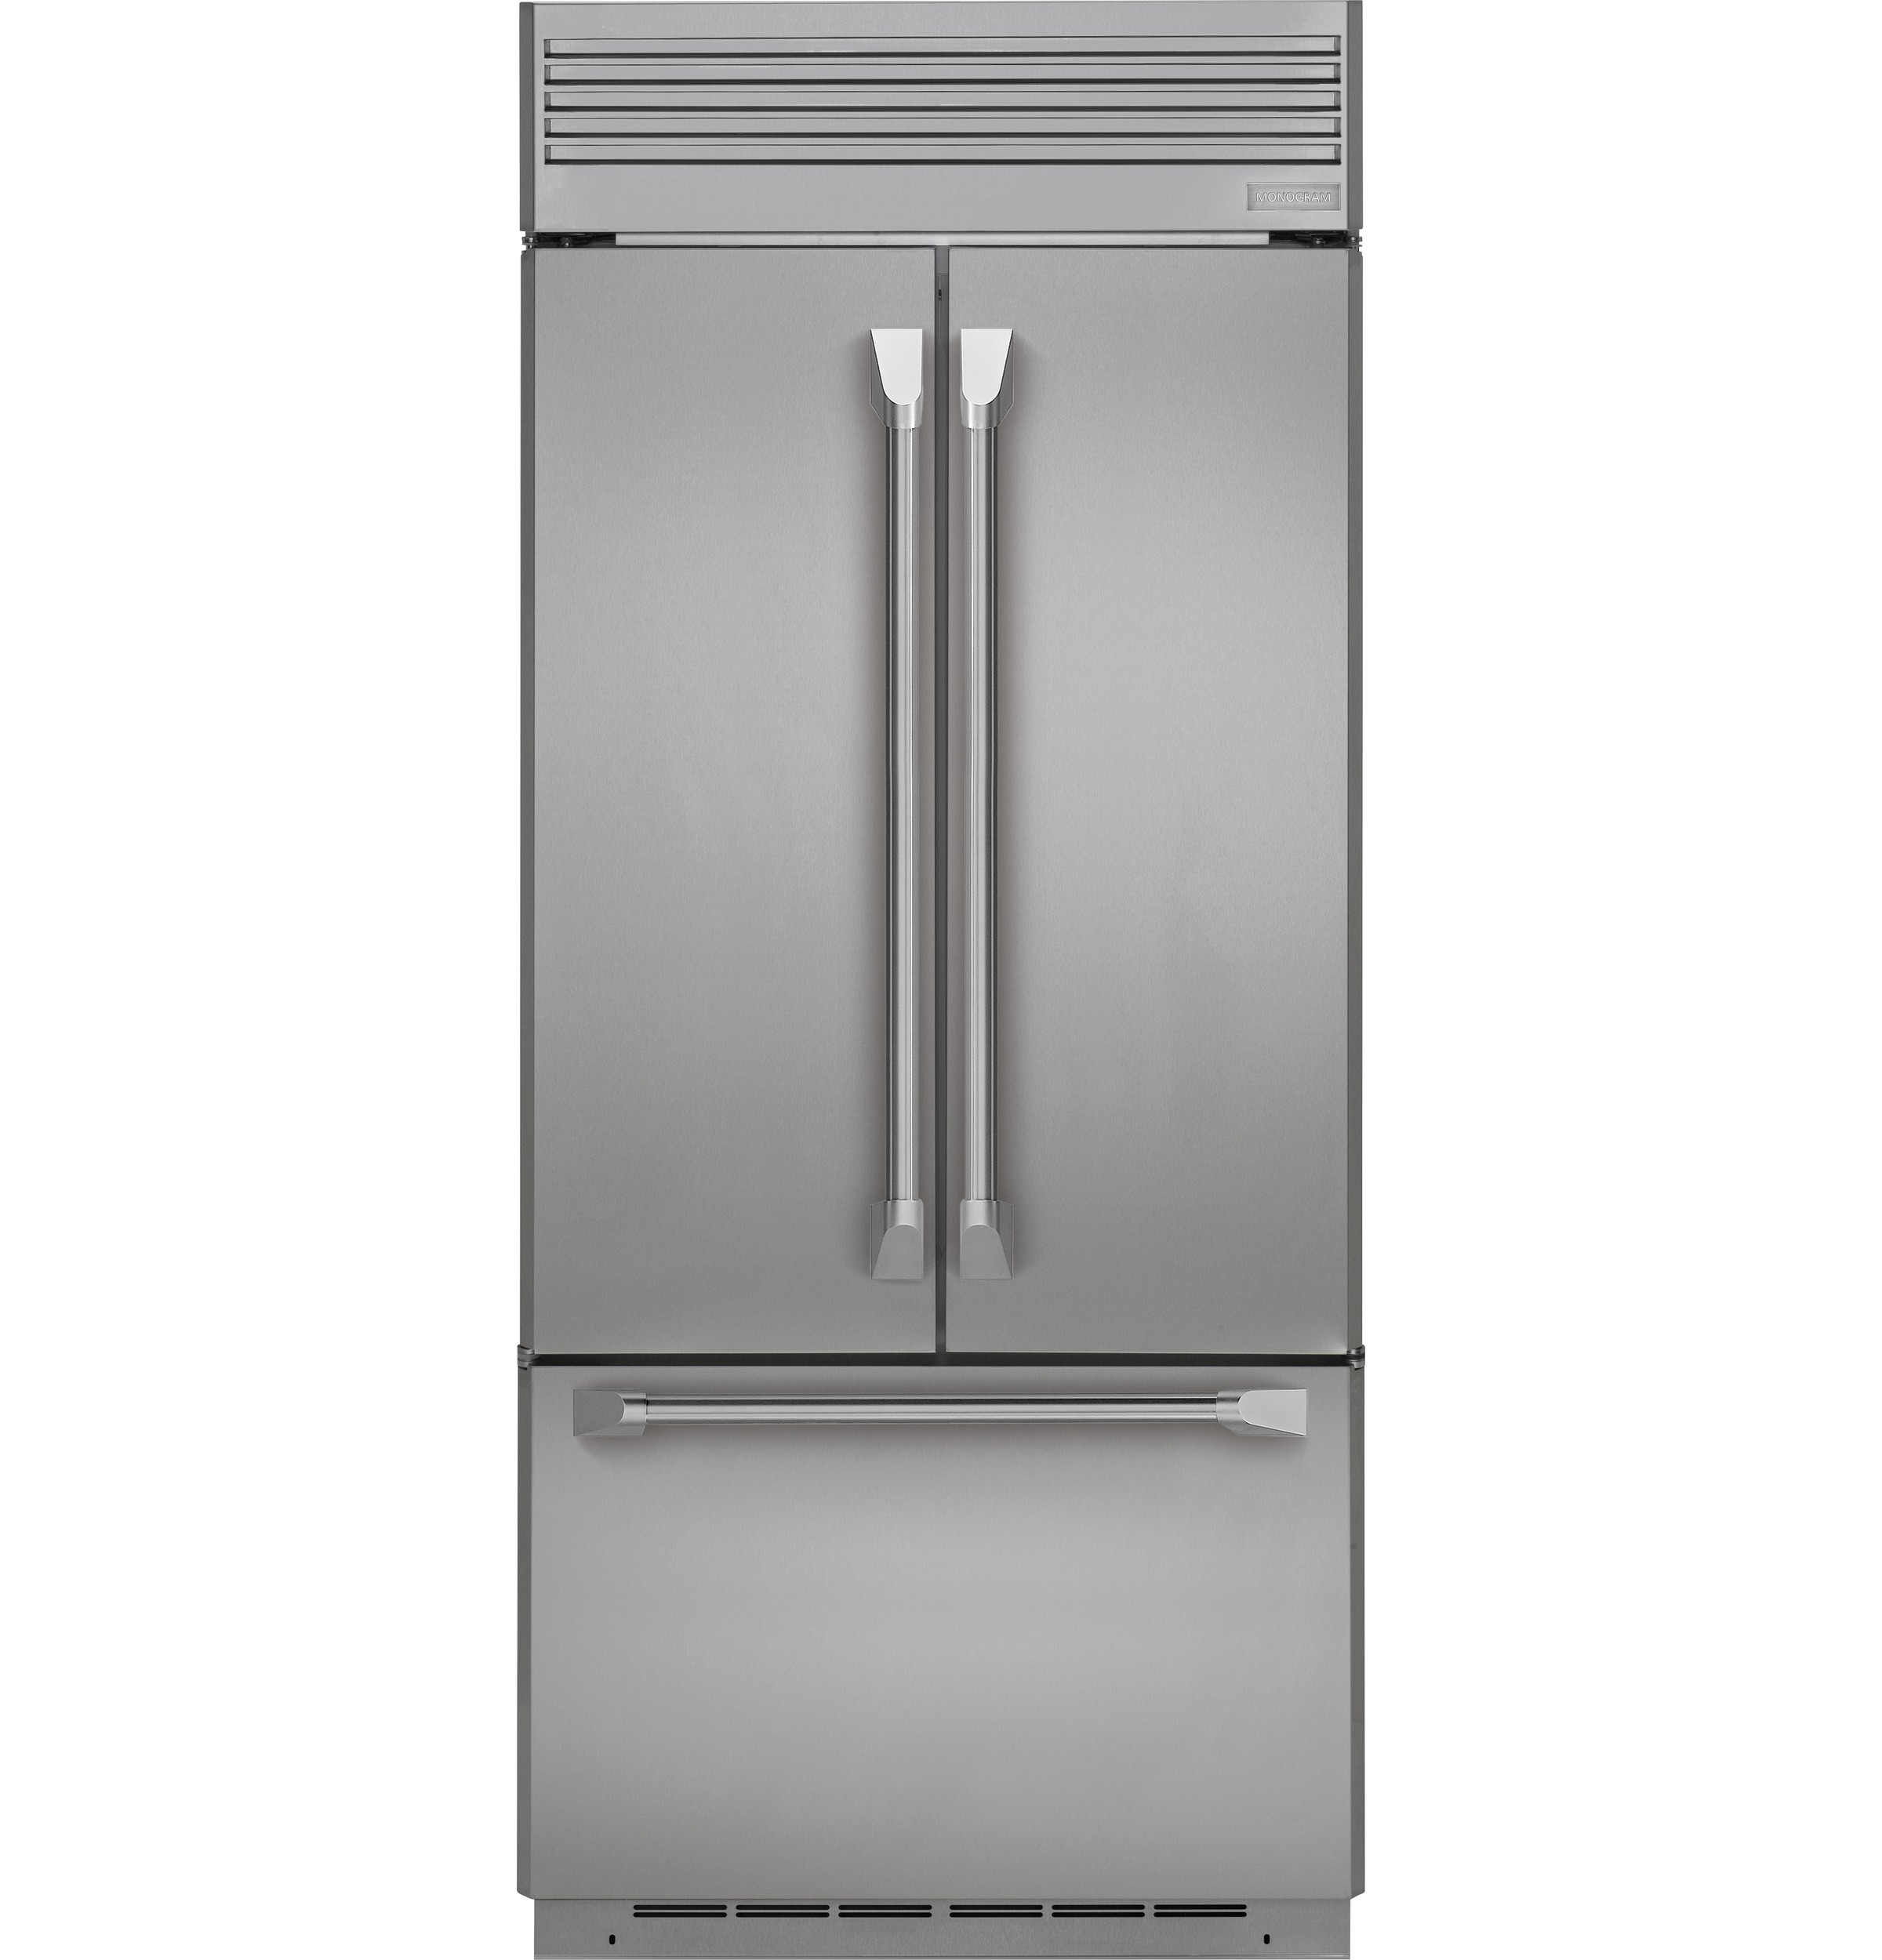 "Monogram Monogram 36"" Built-In French-Door Refrigerator"